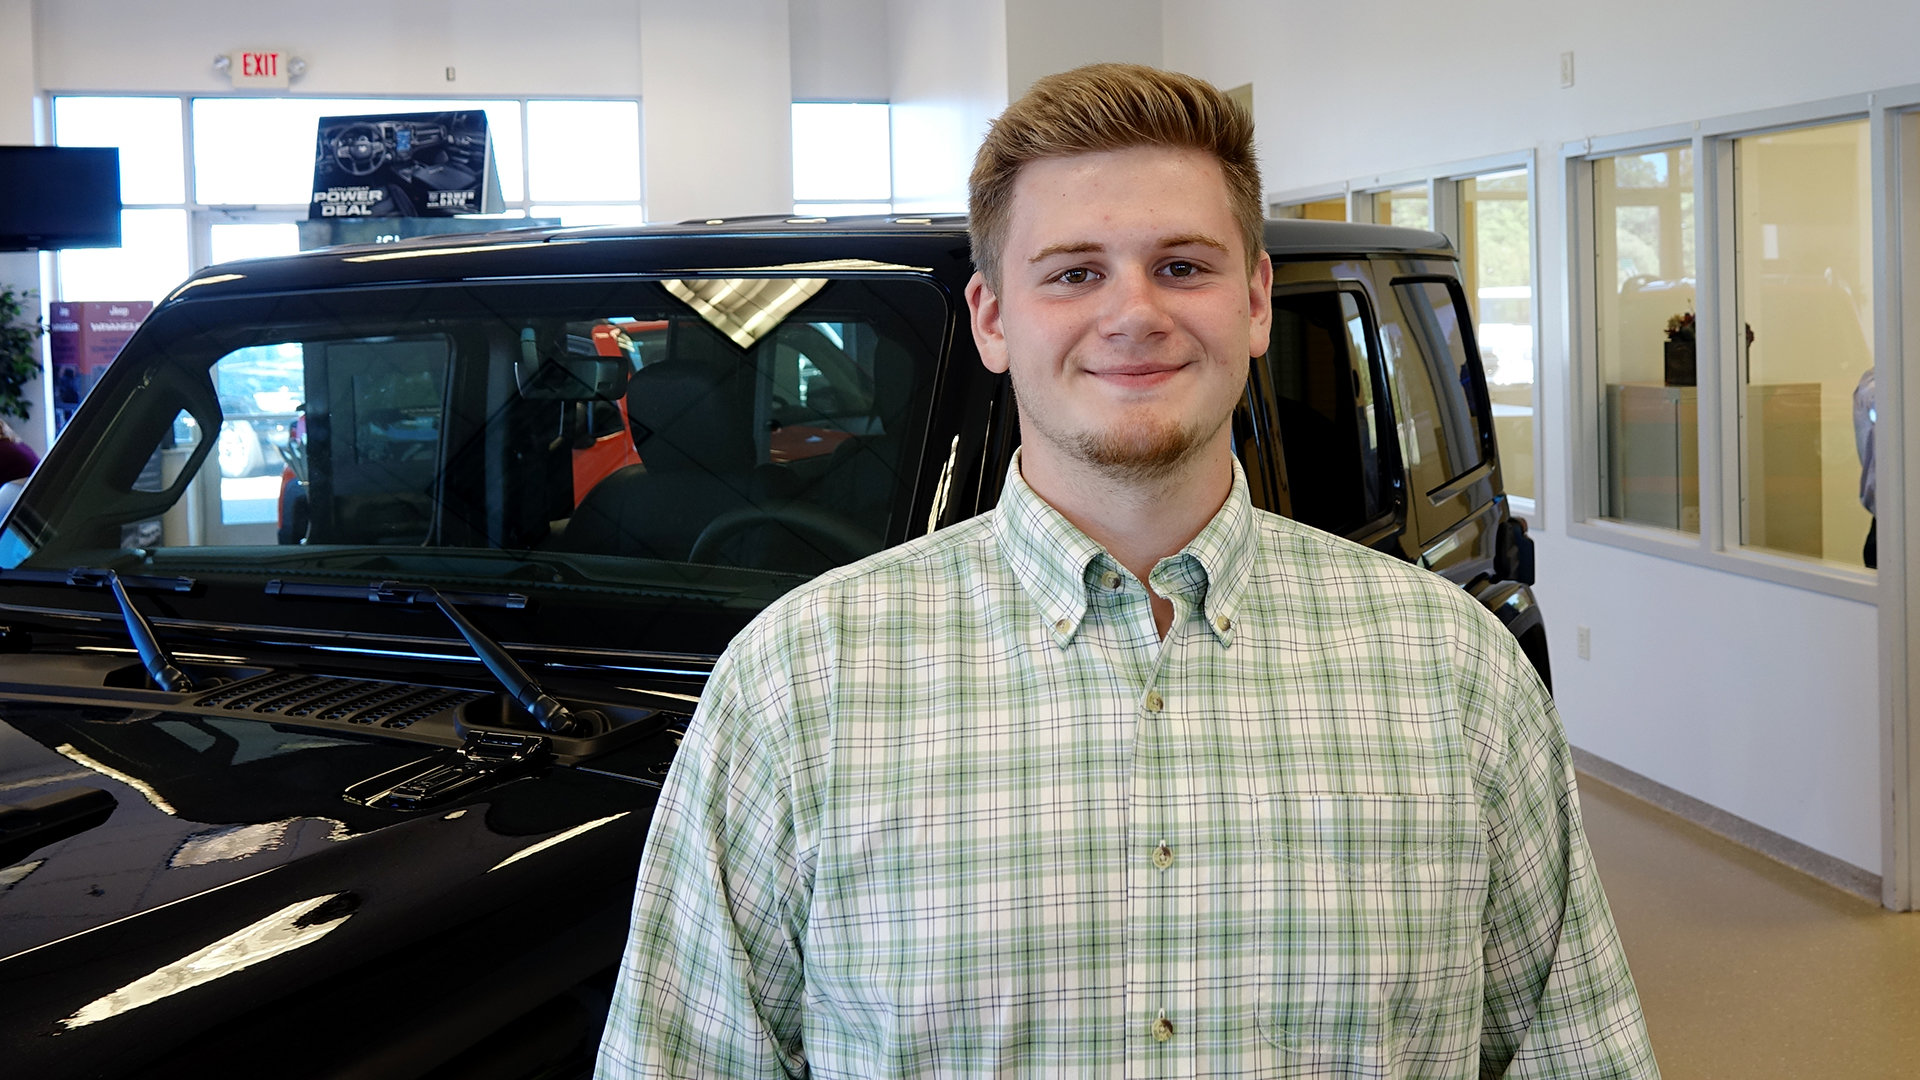 Meet Danny Colbaugh at Eide Chrysler